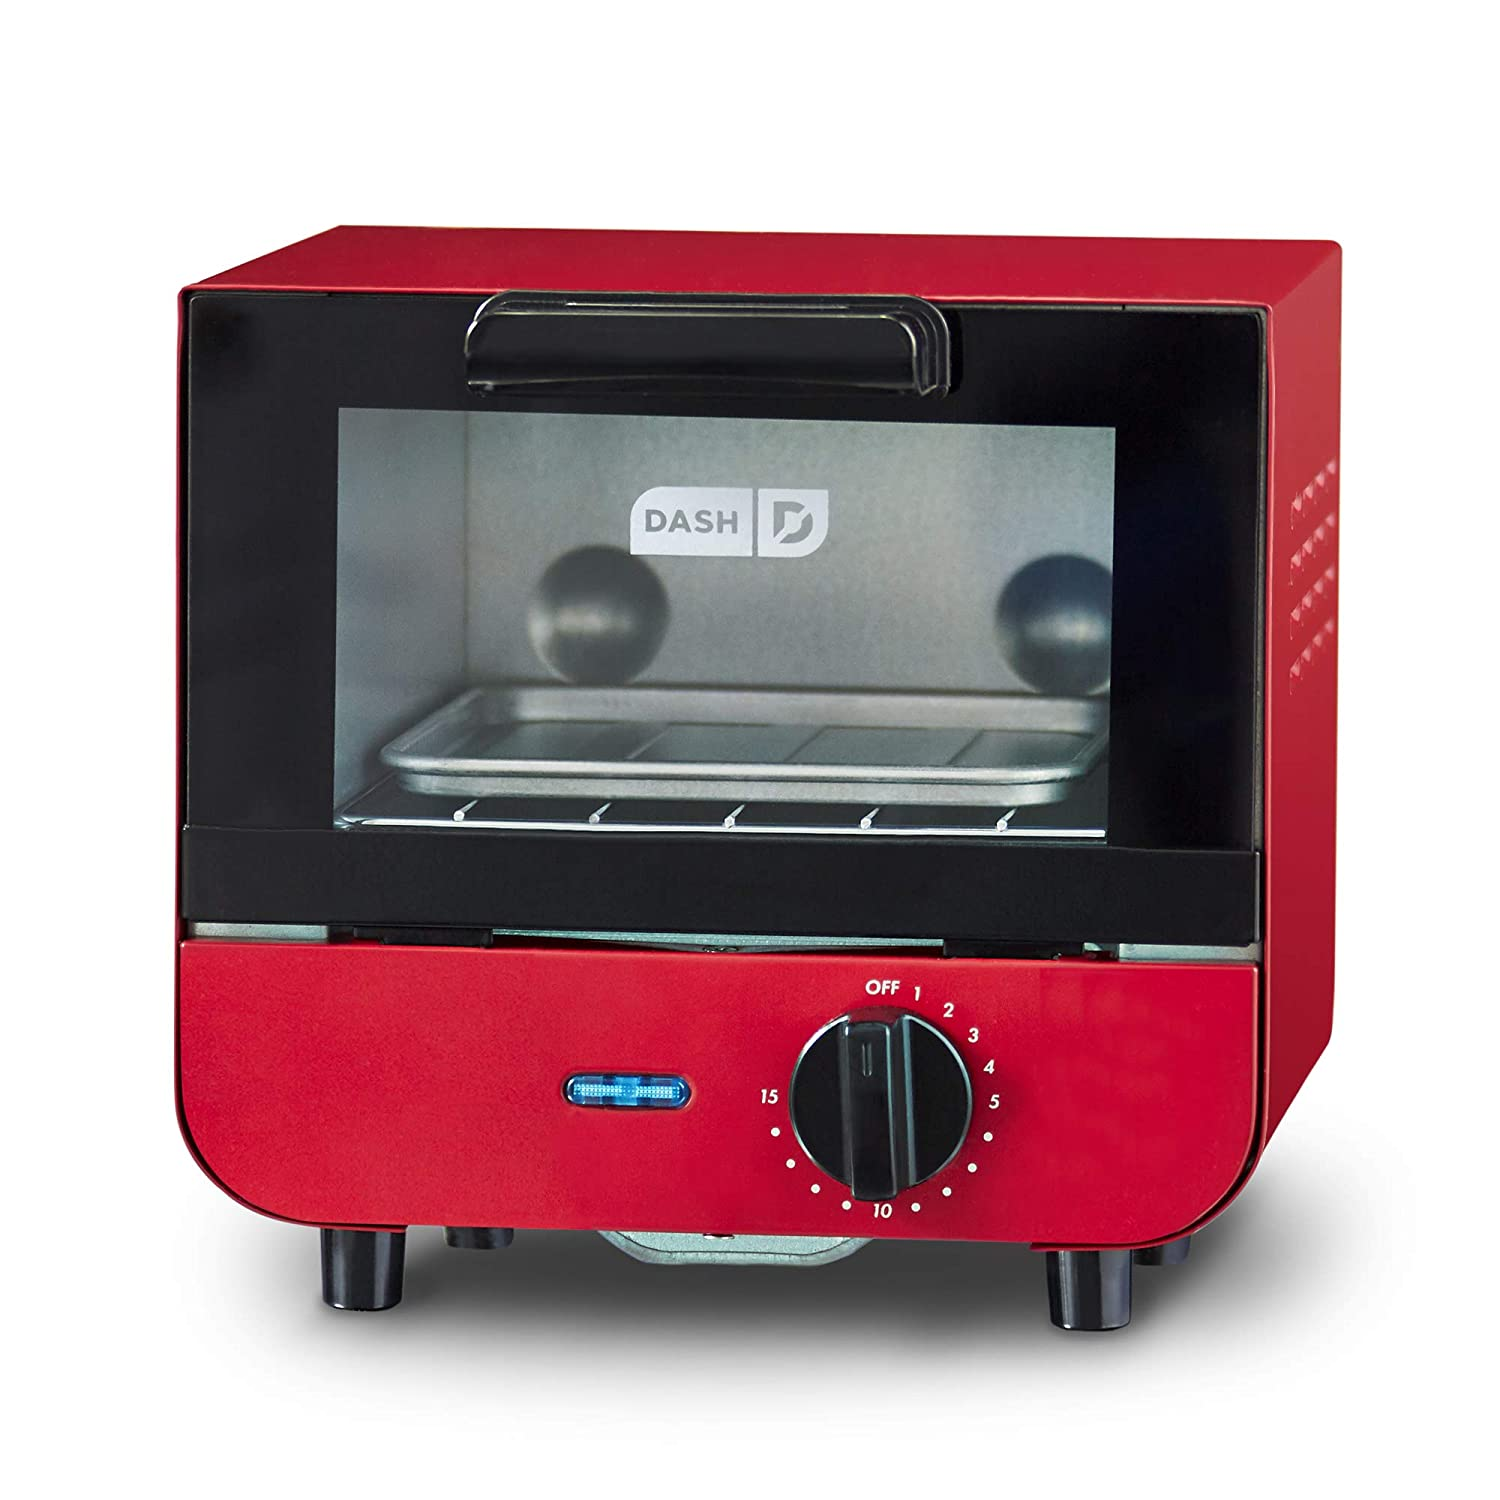 DASH DMTO100GBRD04 Mini Toaster Oven Cooker for Bread, Bagels, Cookies, Pizza, Paninis & More with Baking Tray, Rack + Auto Shut Off Feature Red